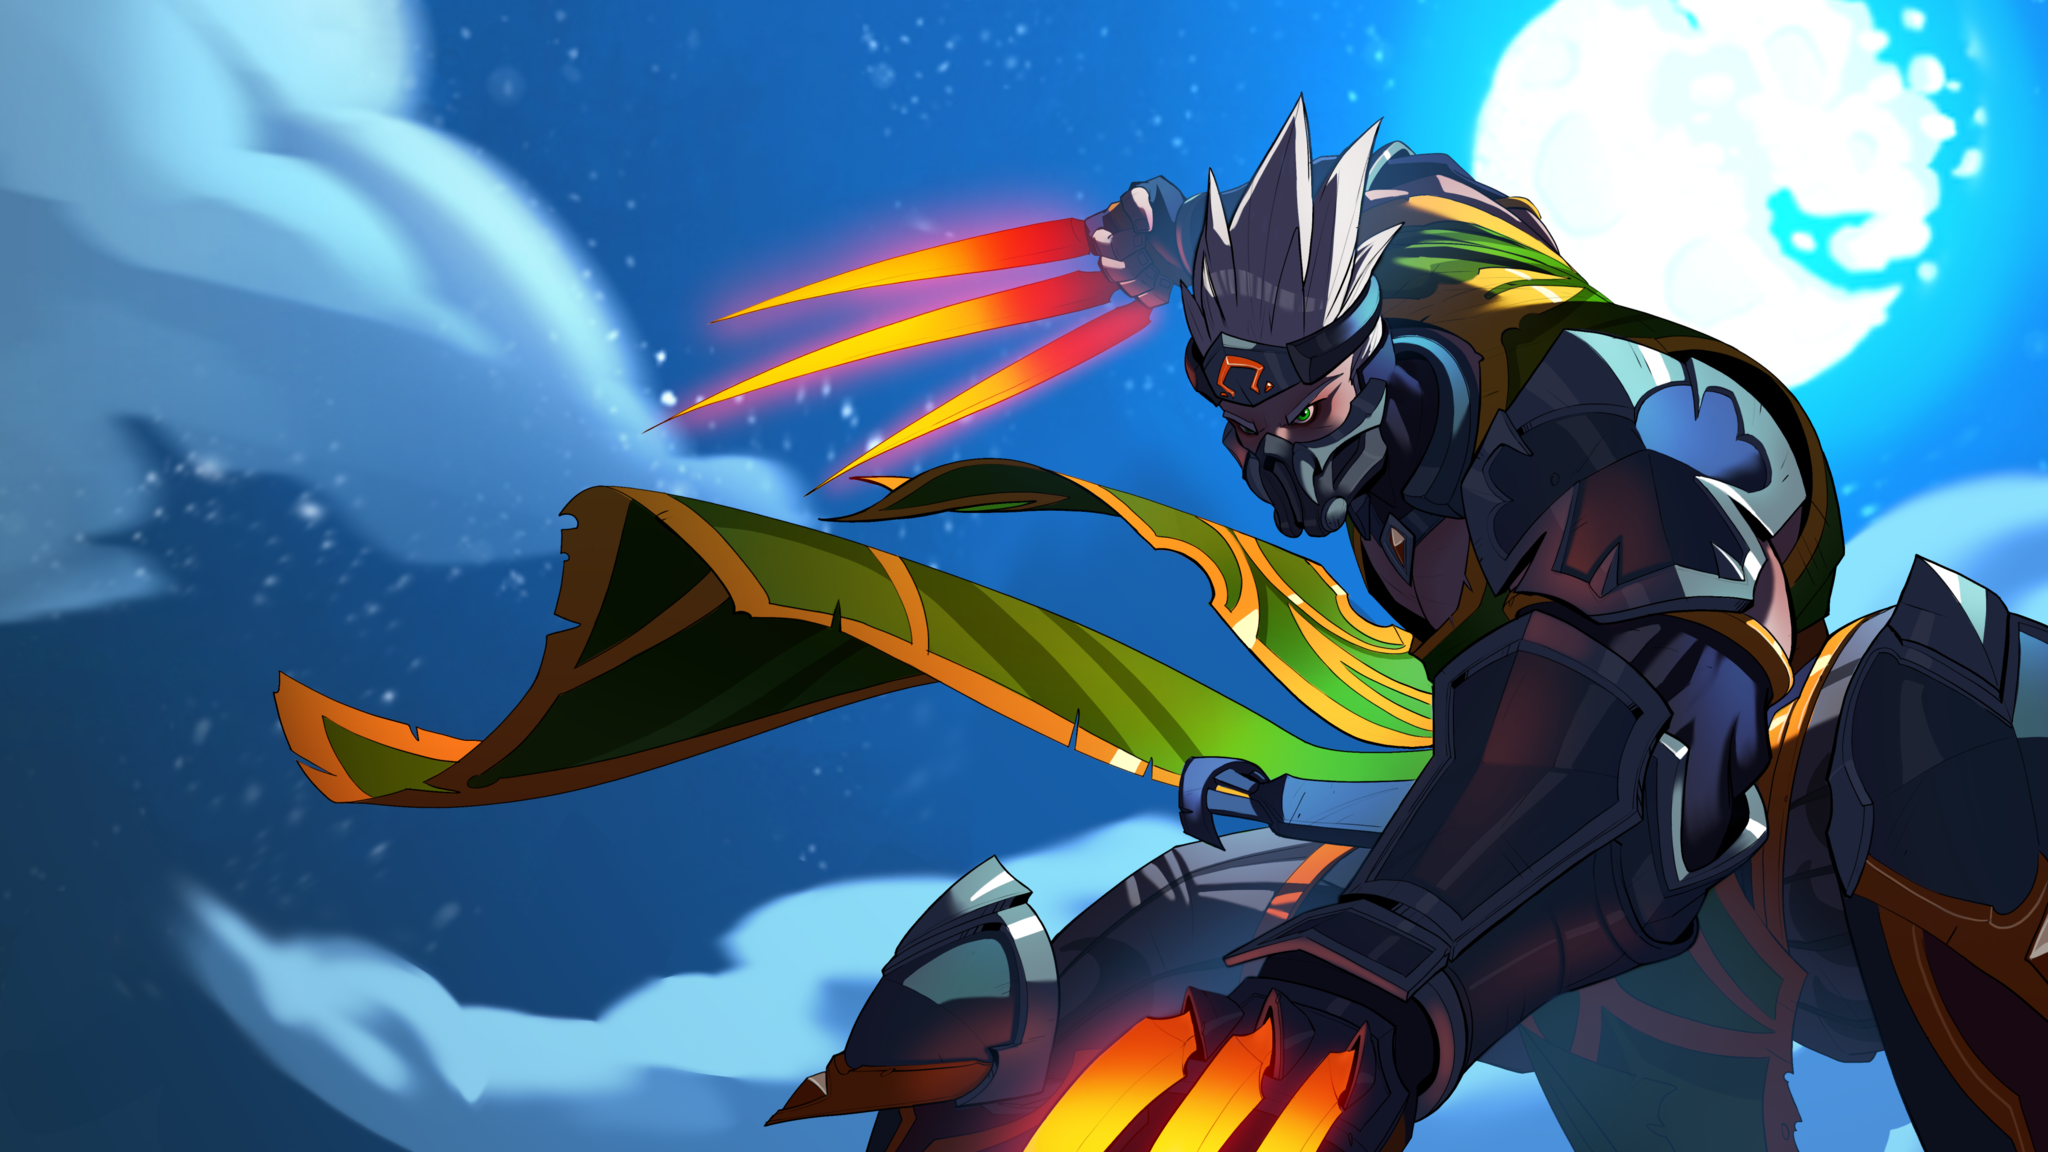 Paladins Koga Hd Wallpaper Background Image 2048x1152